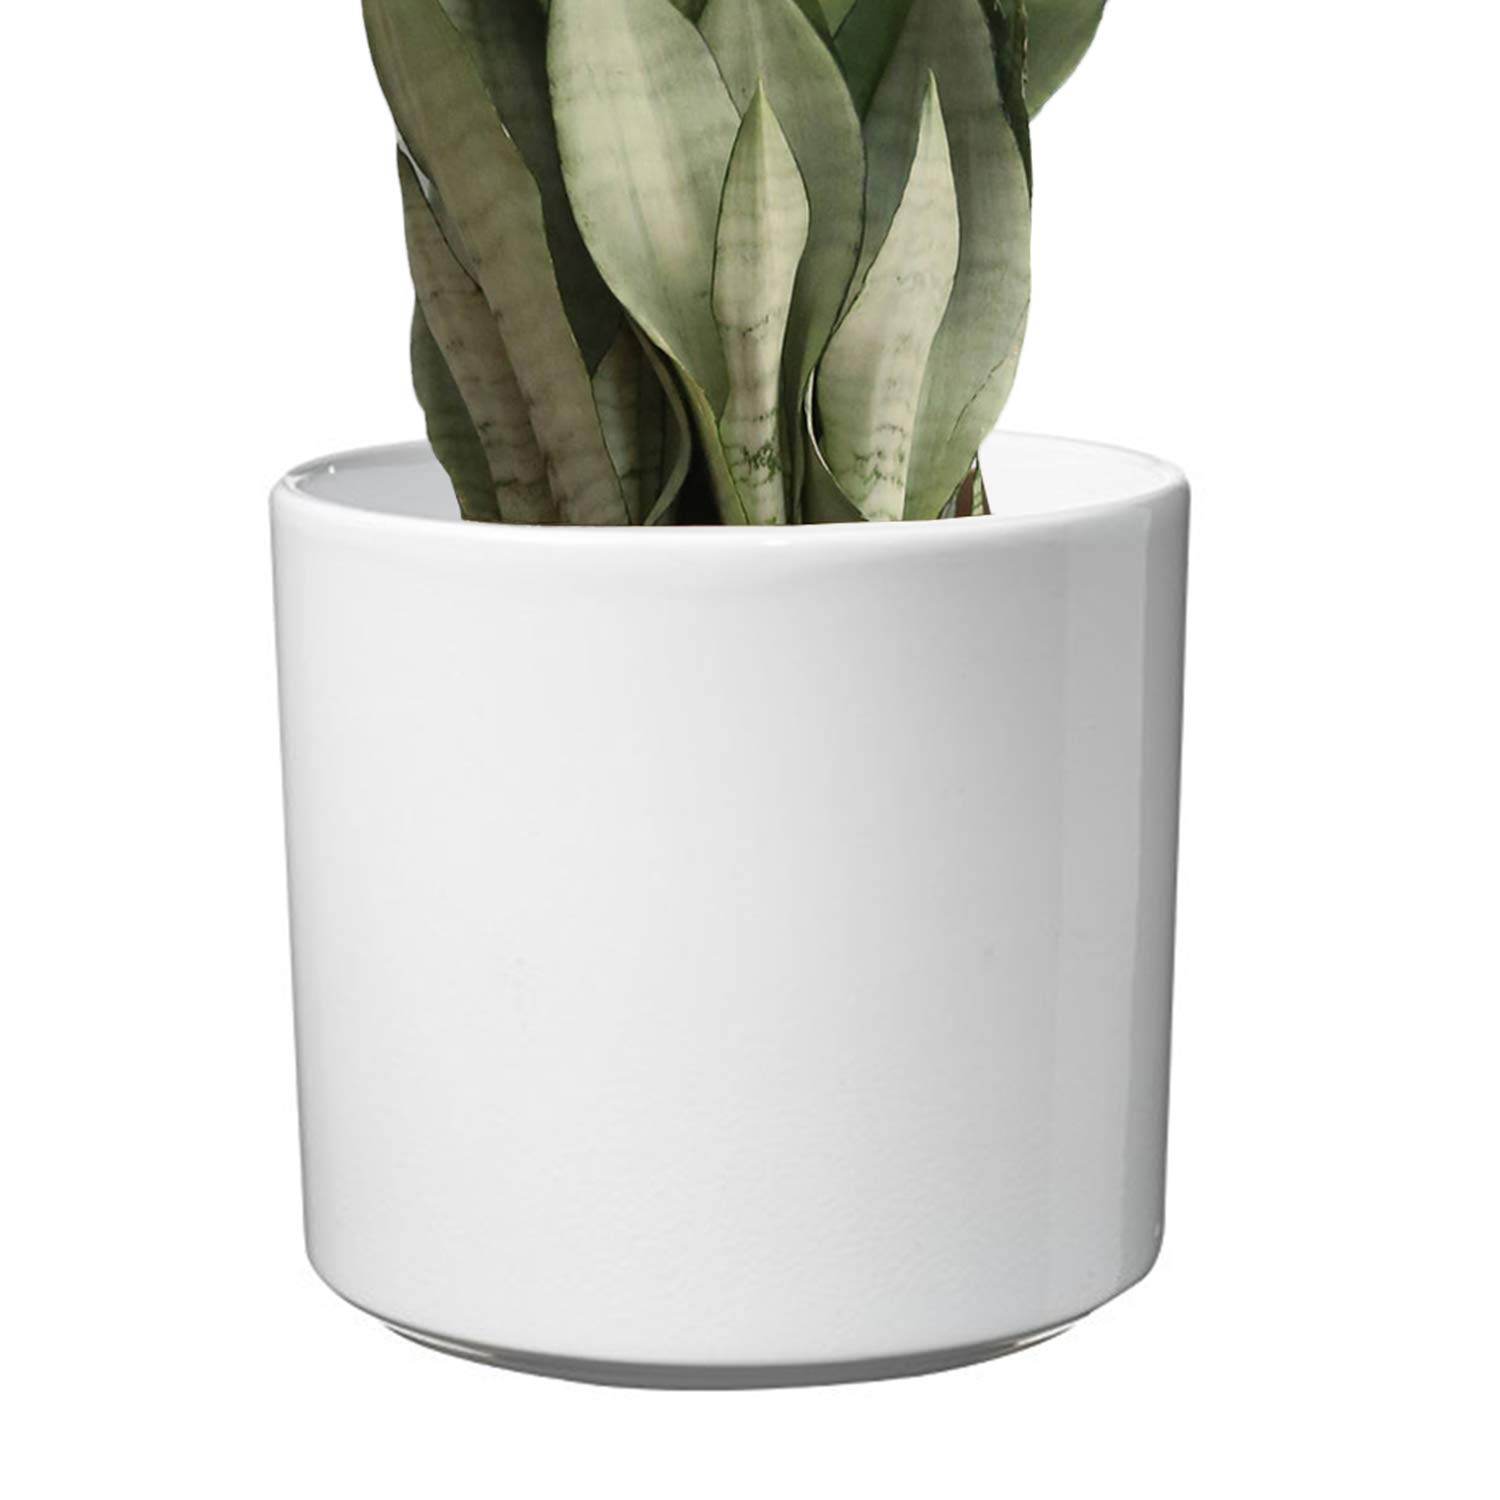 Modern Ceramic White Planter – Large Flower Pot 10 inch Model for Indoor Large Planter Fits Perfectly in Mid Century Plant Stands Cylinder Ceramic Round Plant Pots